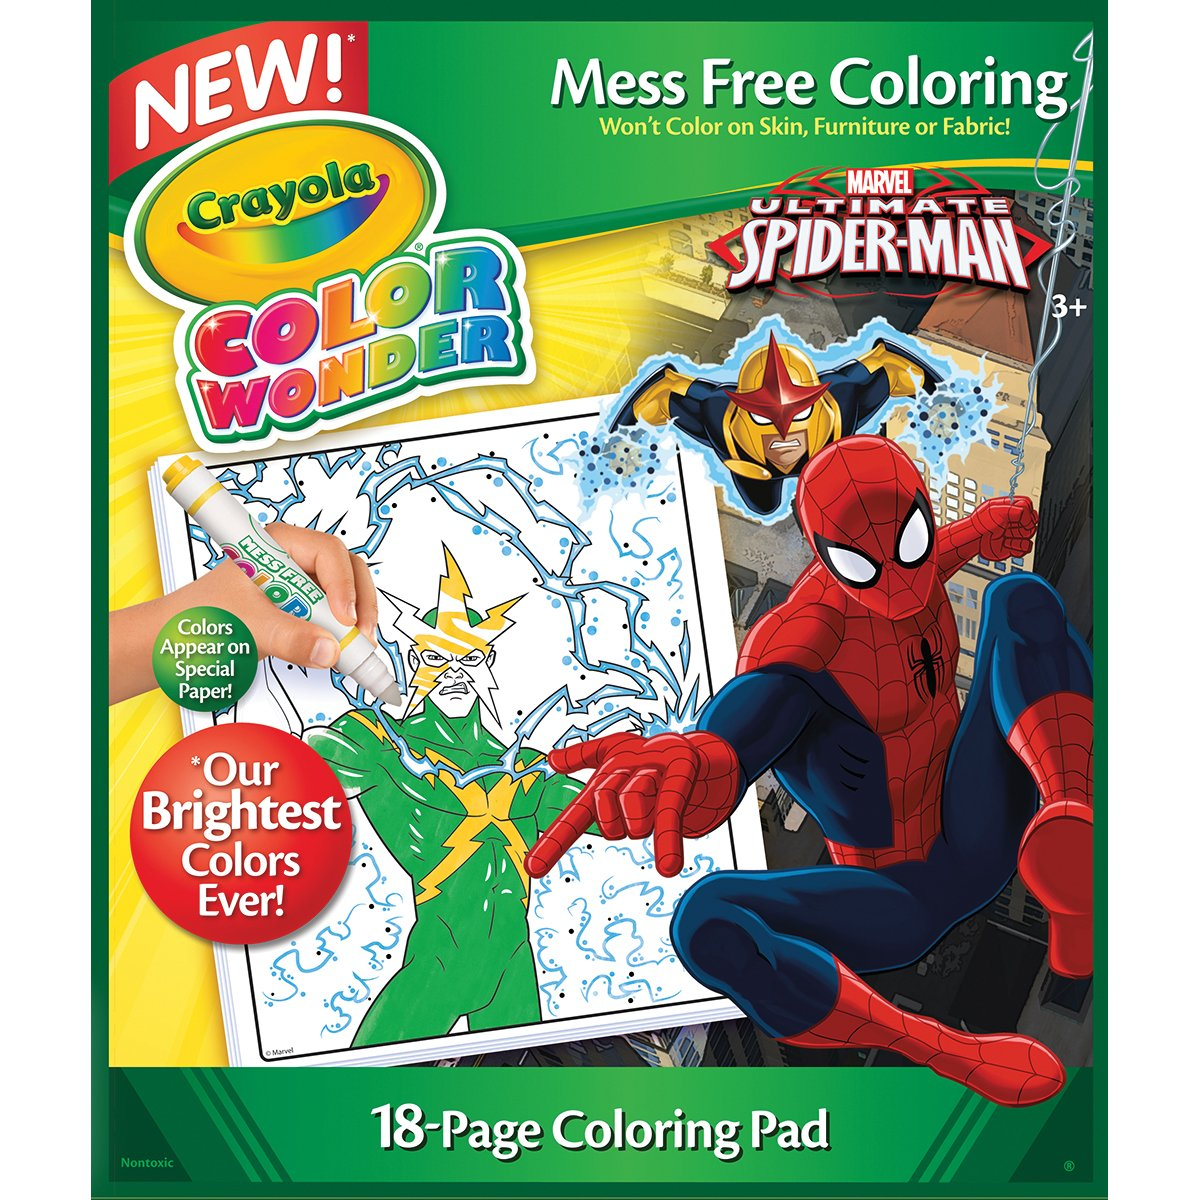 Crayola Color Wonder Coloring Pad-Spiderman: Amazon.co.uk: Toys ...